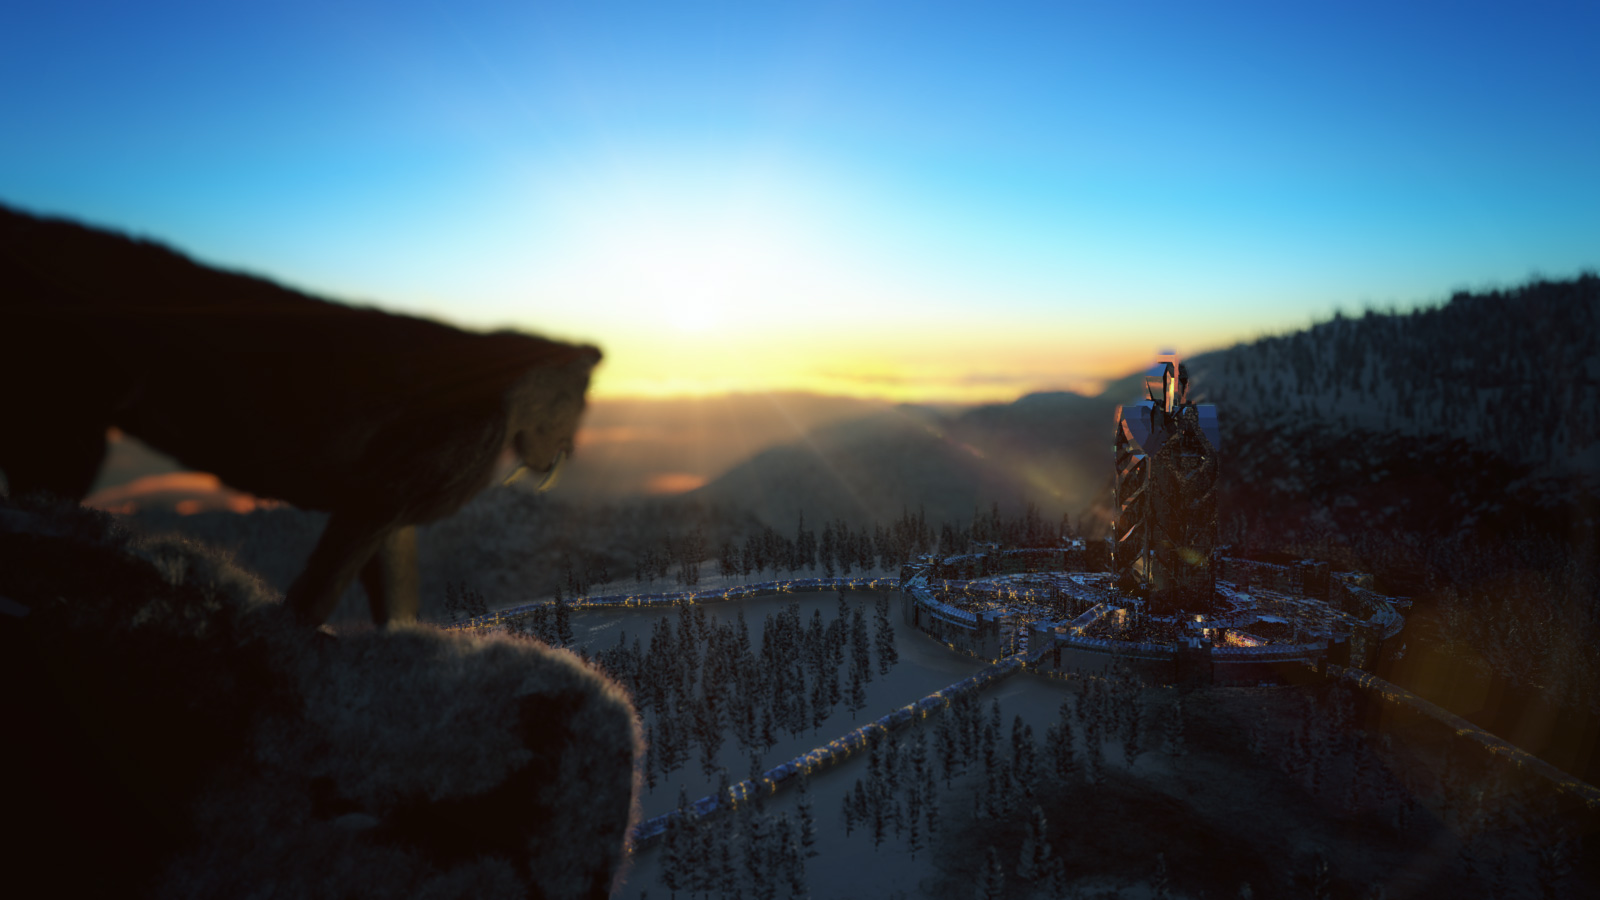 Dawn in Secret Mountain by hoangphamvfx